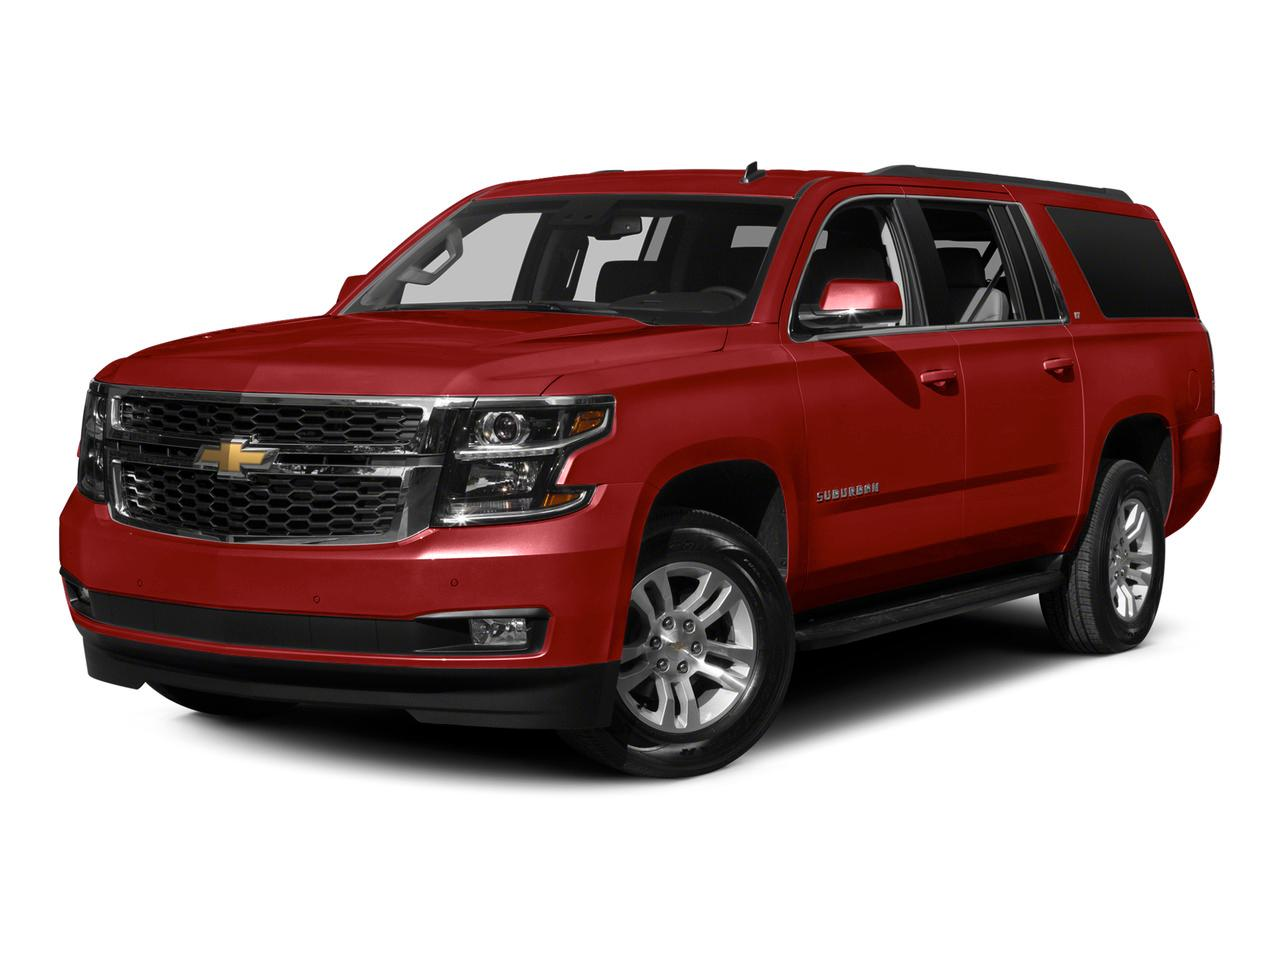 2015 Chevrolet Suburban Vehicle Photo in Pawling, NY 12564-3219